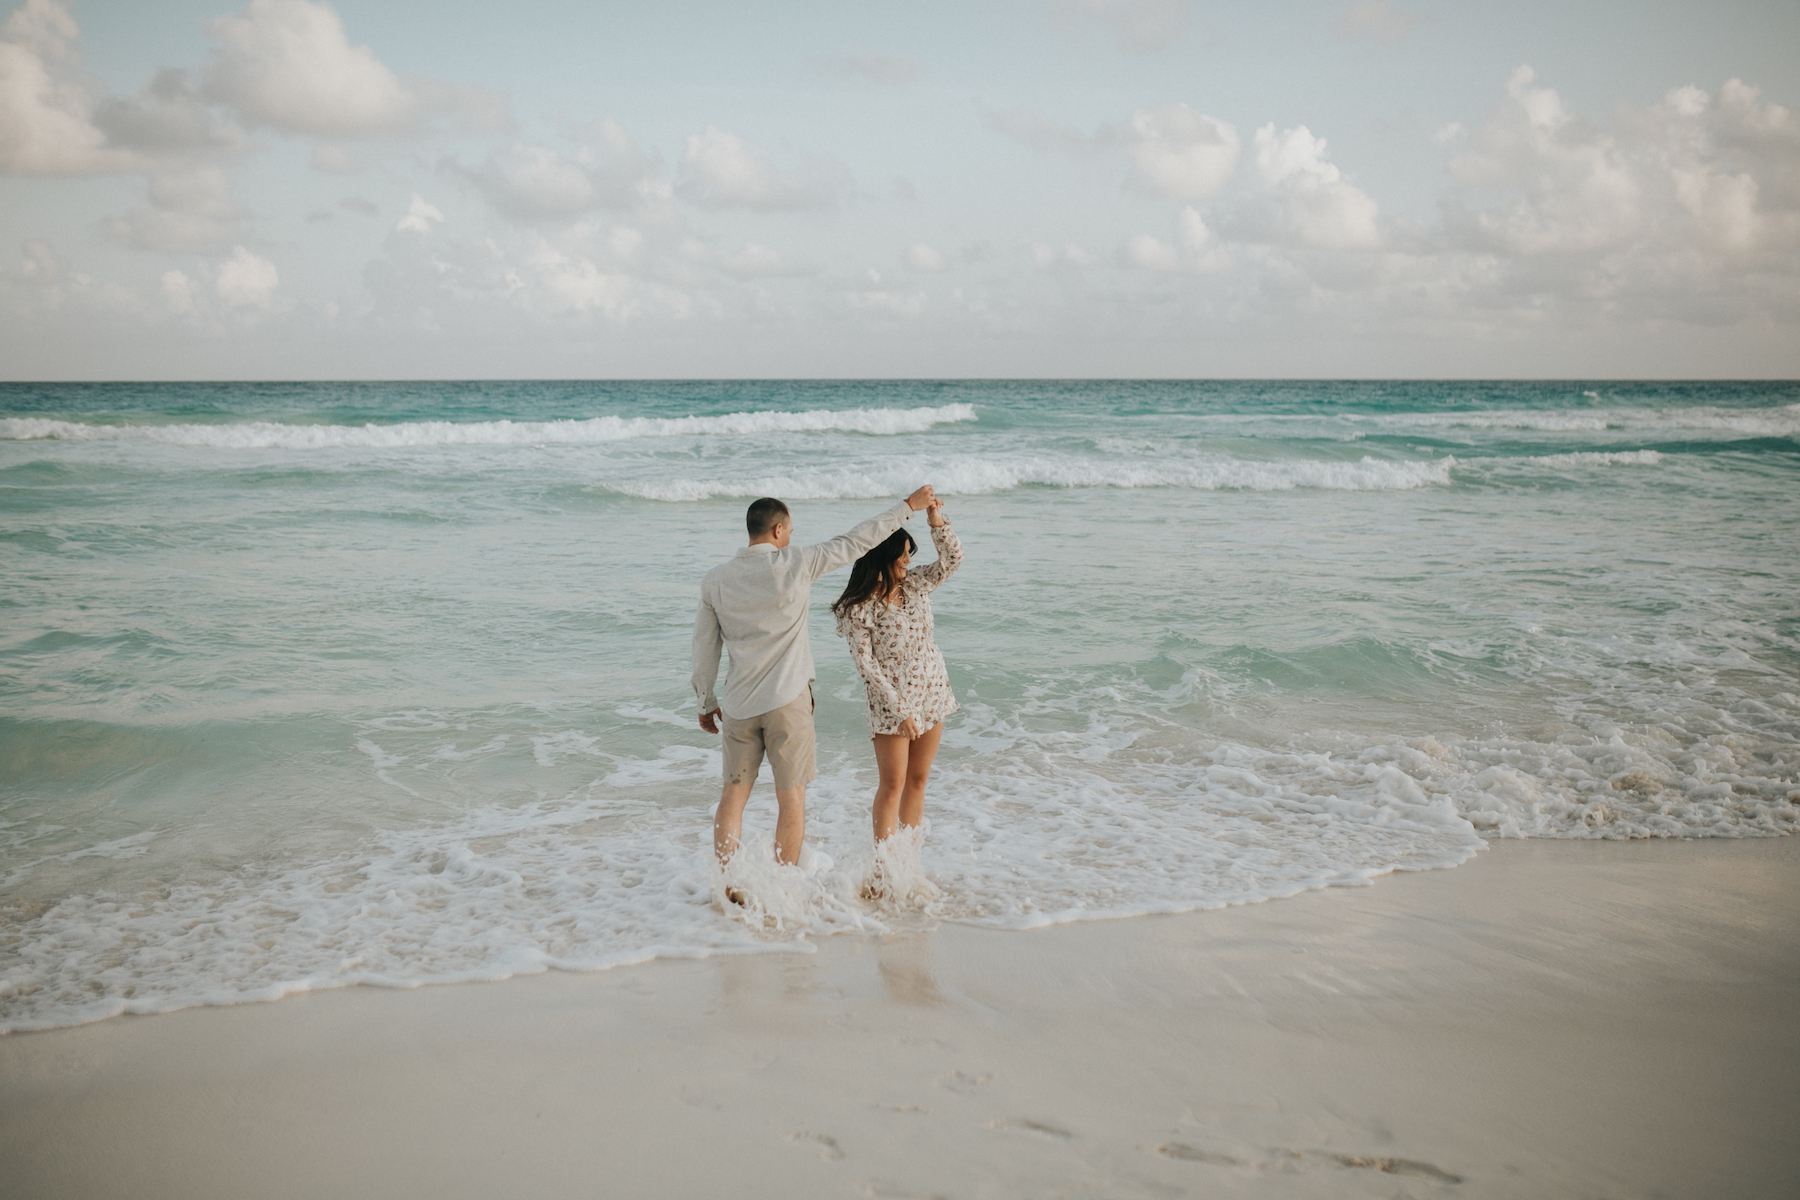 Couple on the beach in Cancun Mexico